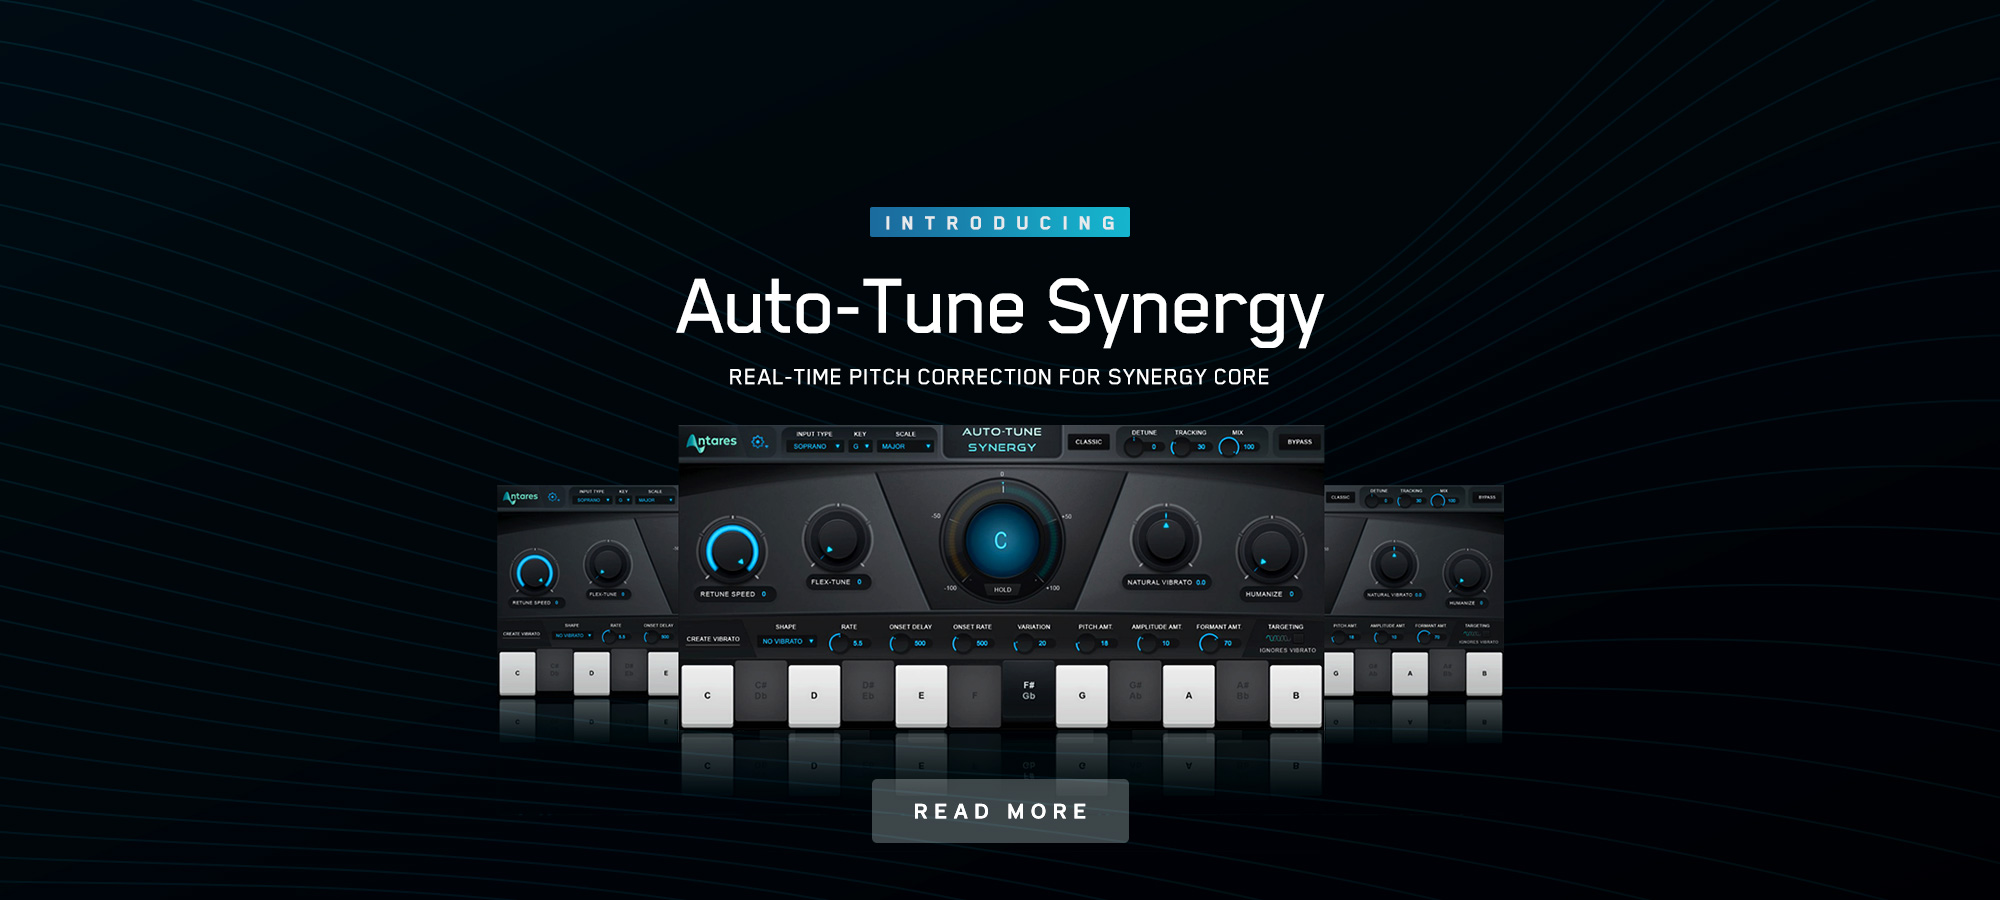 Auto-Tune Synergy Brings Live Pitch Correction to the Antelope Experience